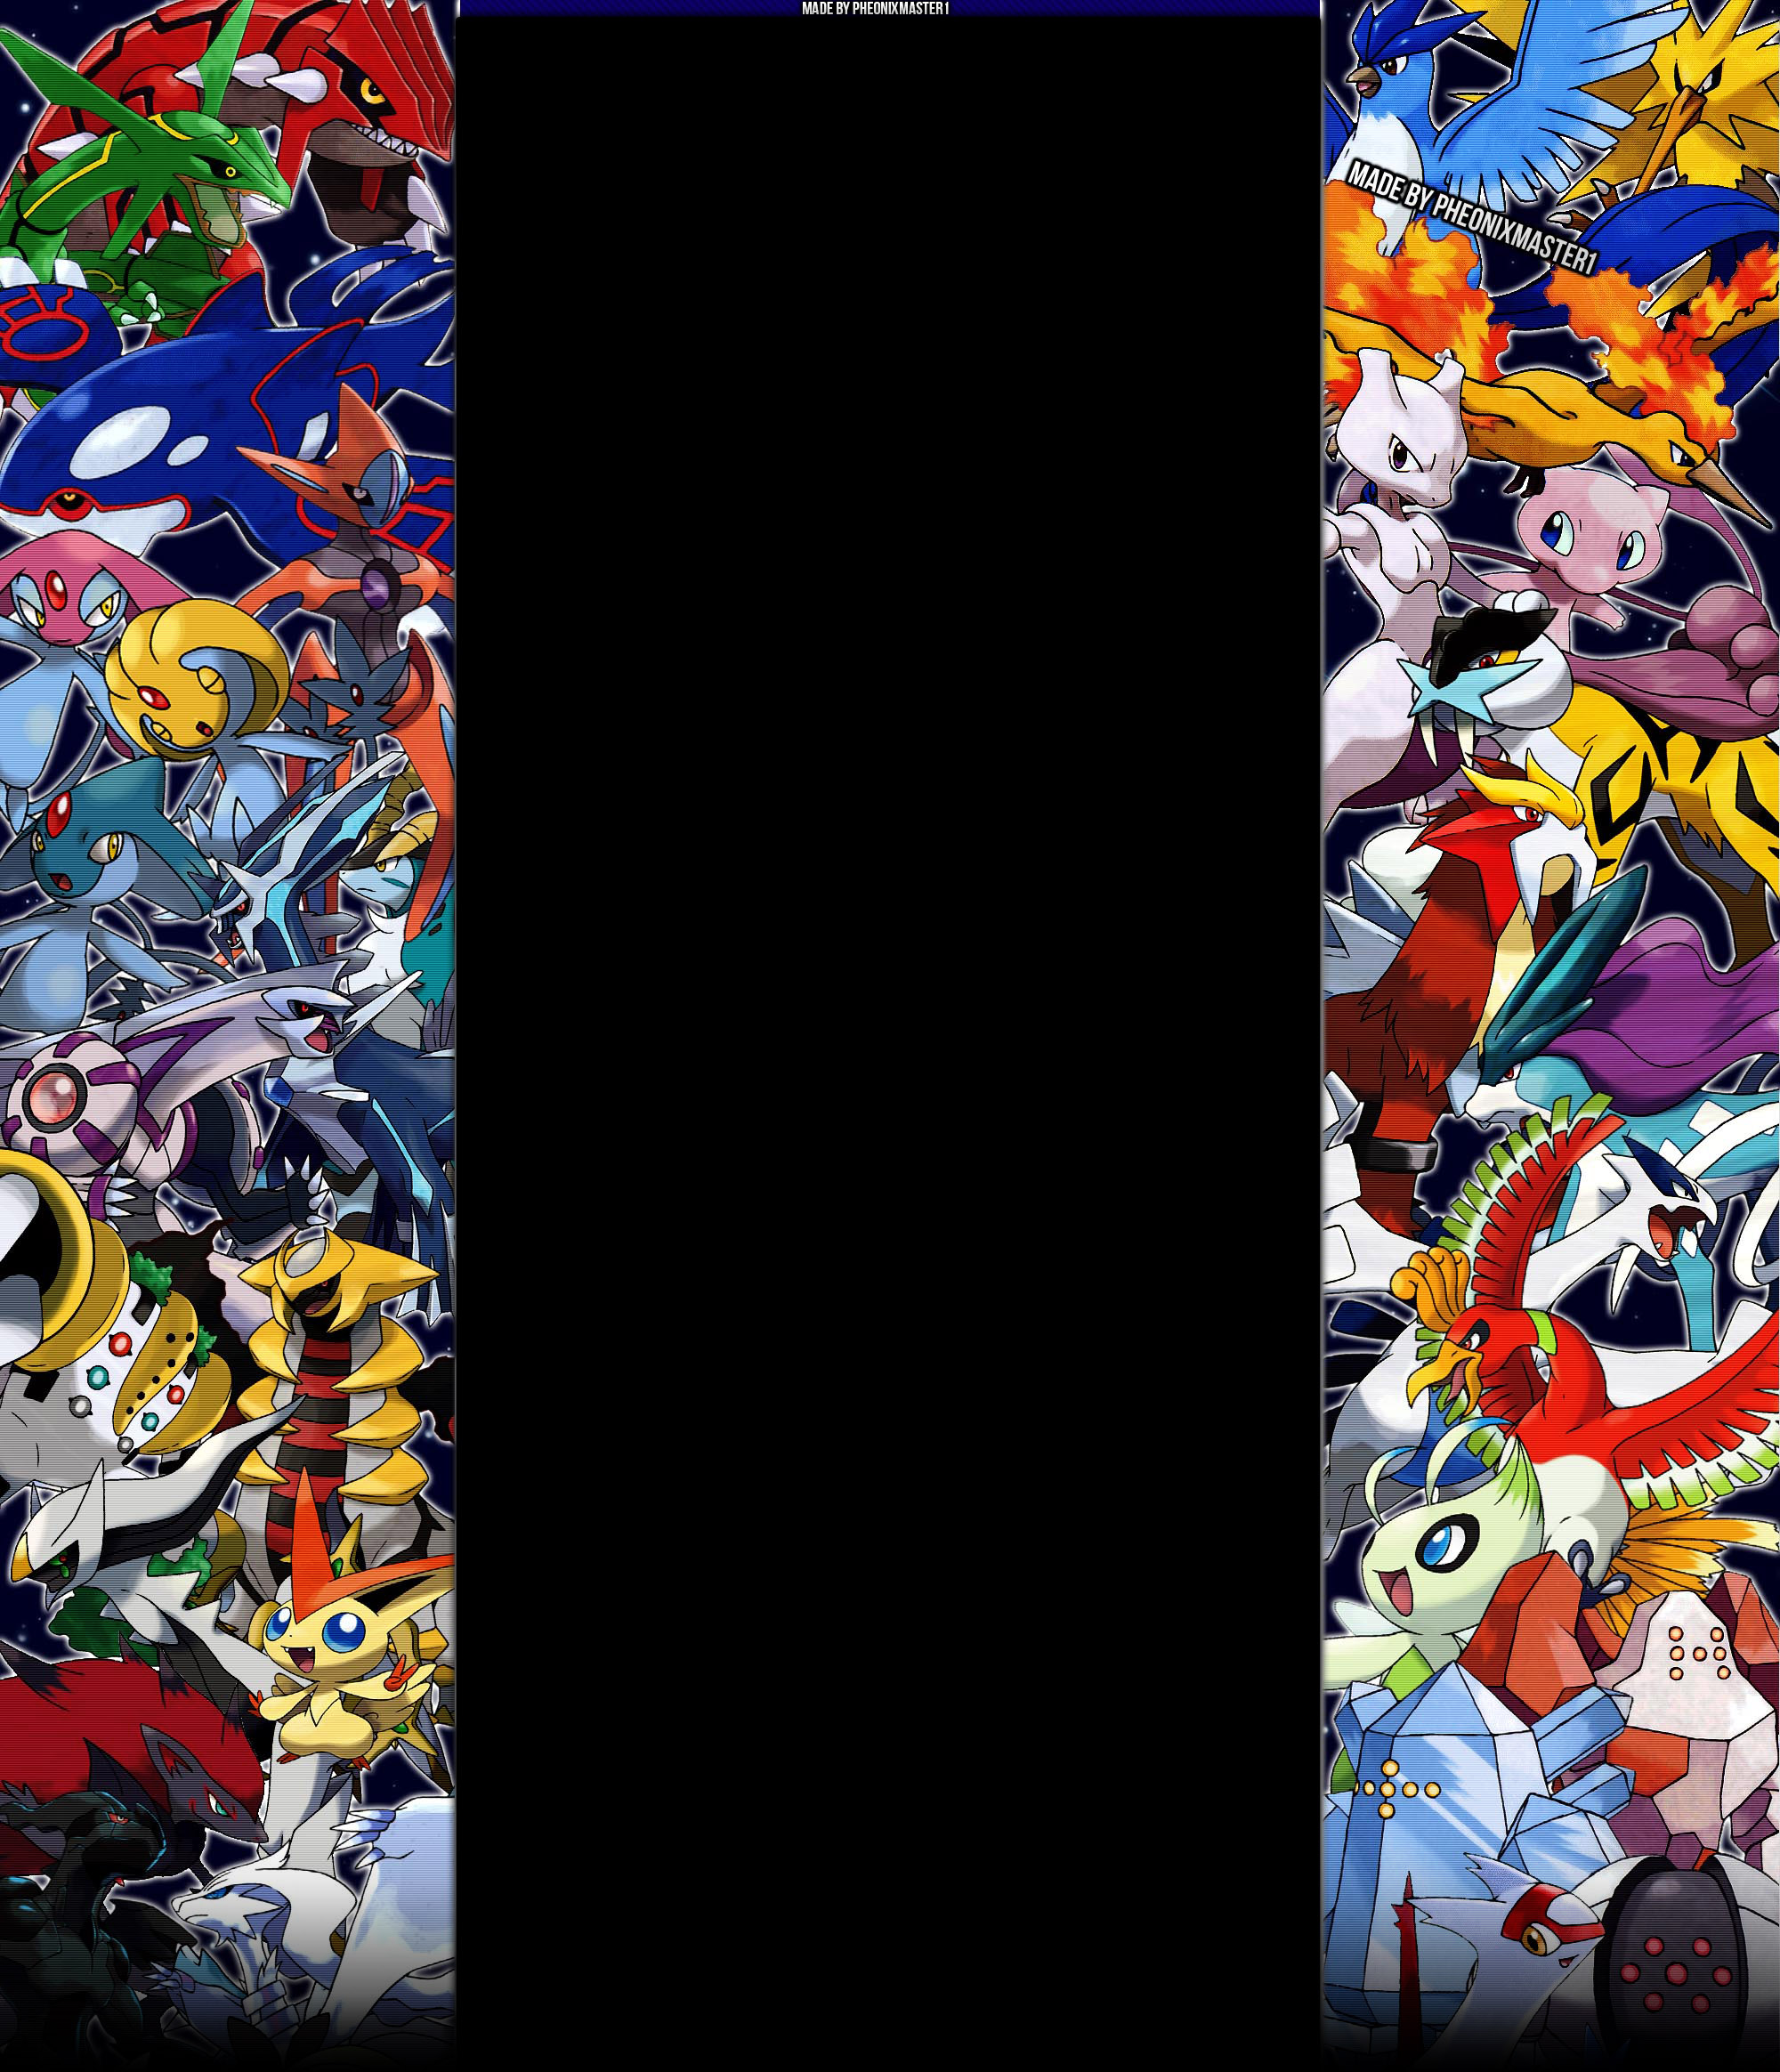 Legendary Pokemon Youtube background by Pheonixmaster1